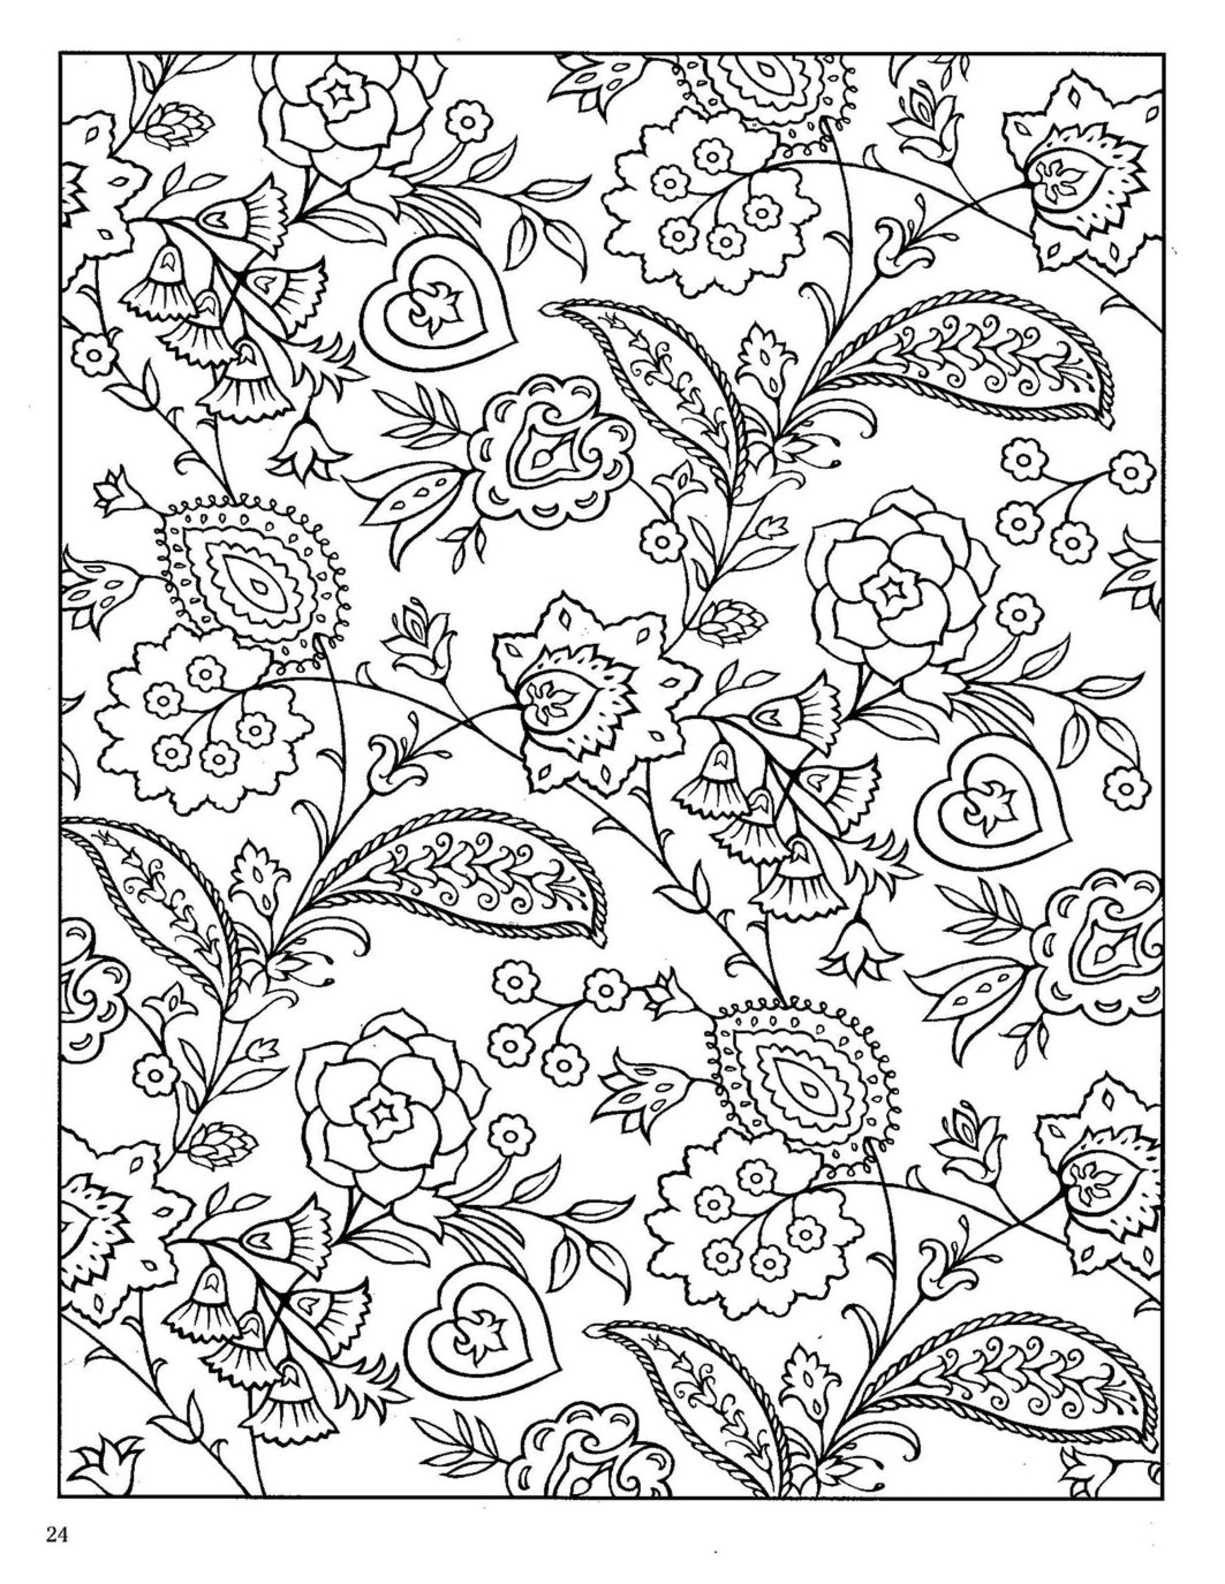 Flower drawings on pinterest dover publications coloring pages and - Printable Dover Coloring Pages